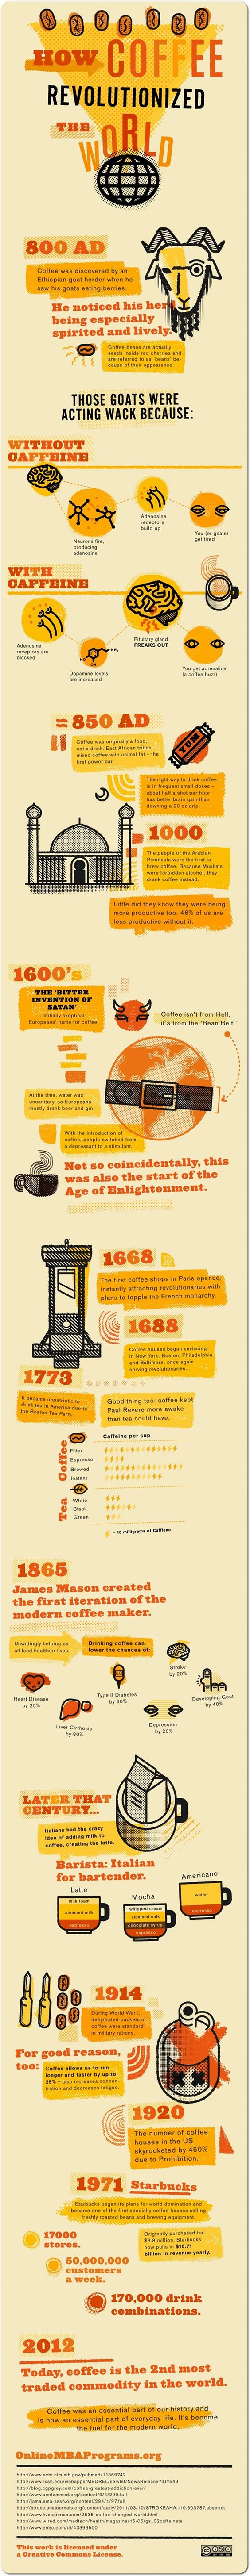 How coffee revolutionized the World #infographic